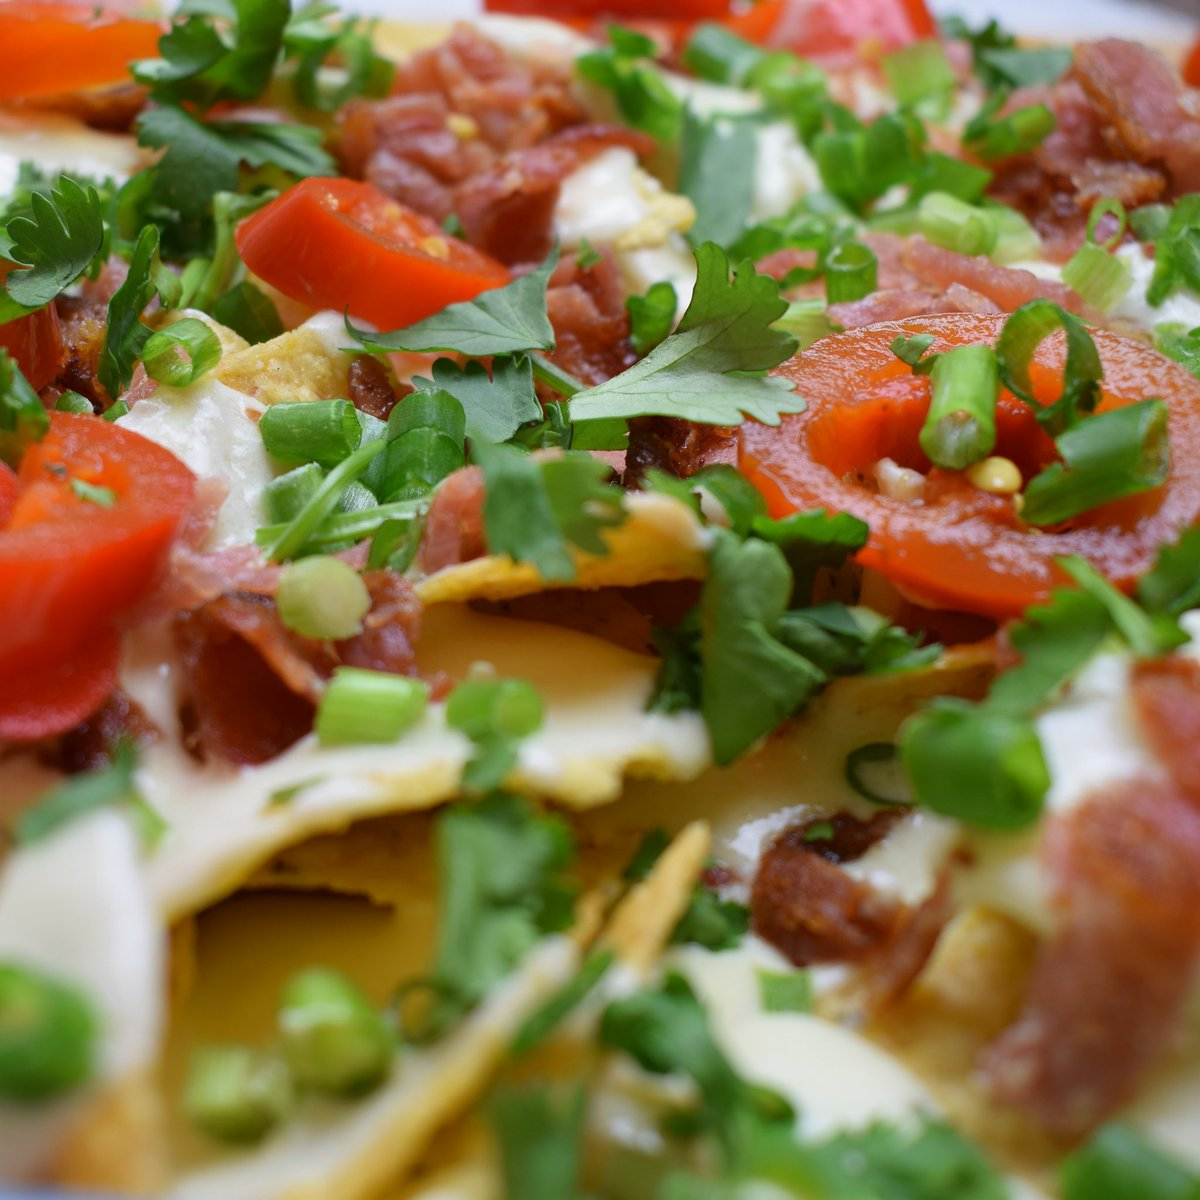 My easy Bacon Cheese Nachos are ready for you to gobble up! #easy #bacon #cheese #nachos #gildedgingerbread  https://www. gildedgingerbread.com/single-post/20 17/07/21/Bacon-Nachos &nbsp; … <br>http://pic.twitter.com/L0uvGpovep